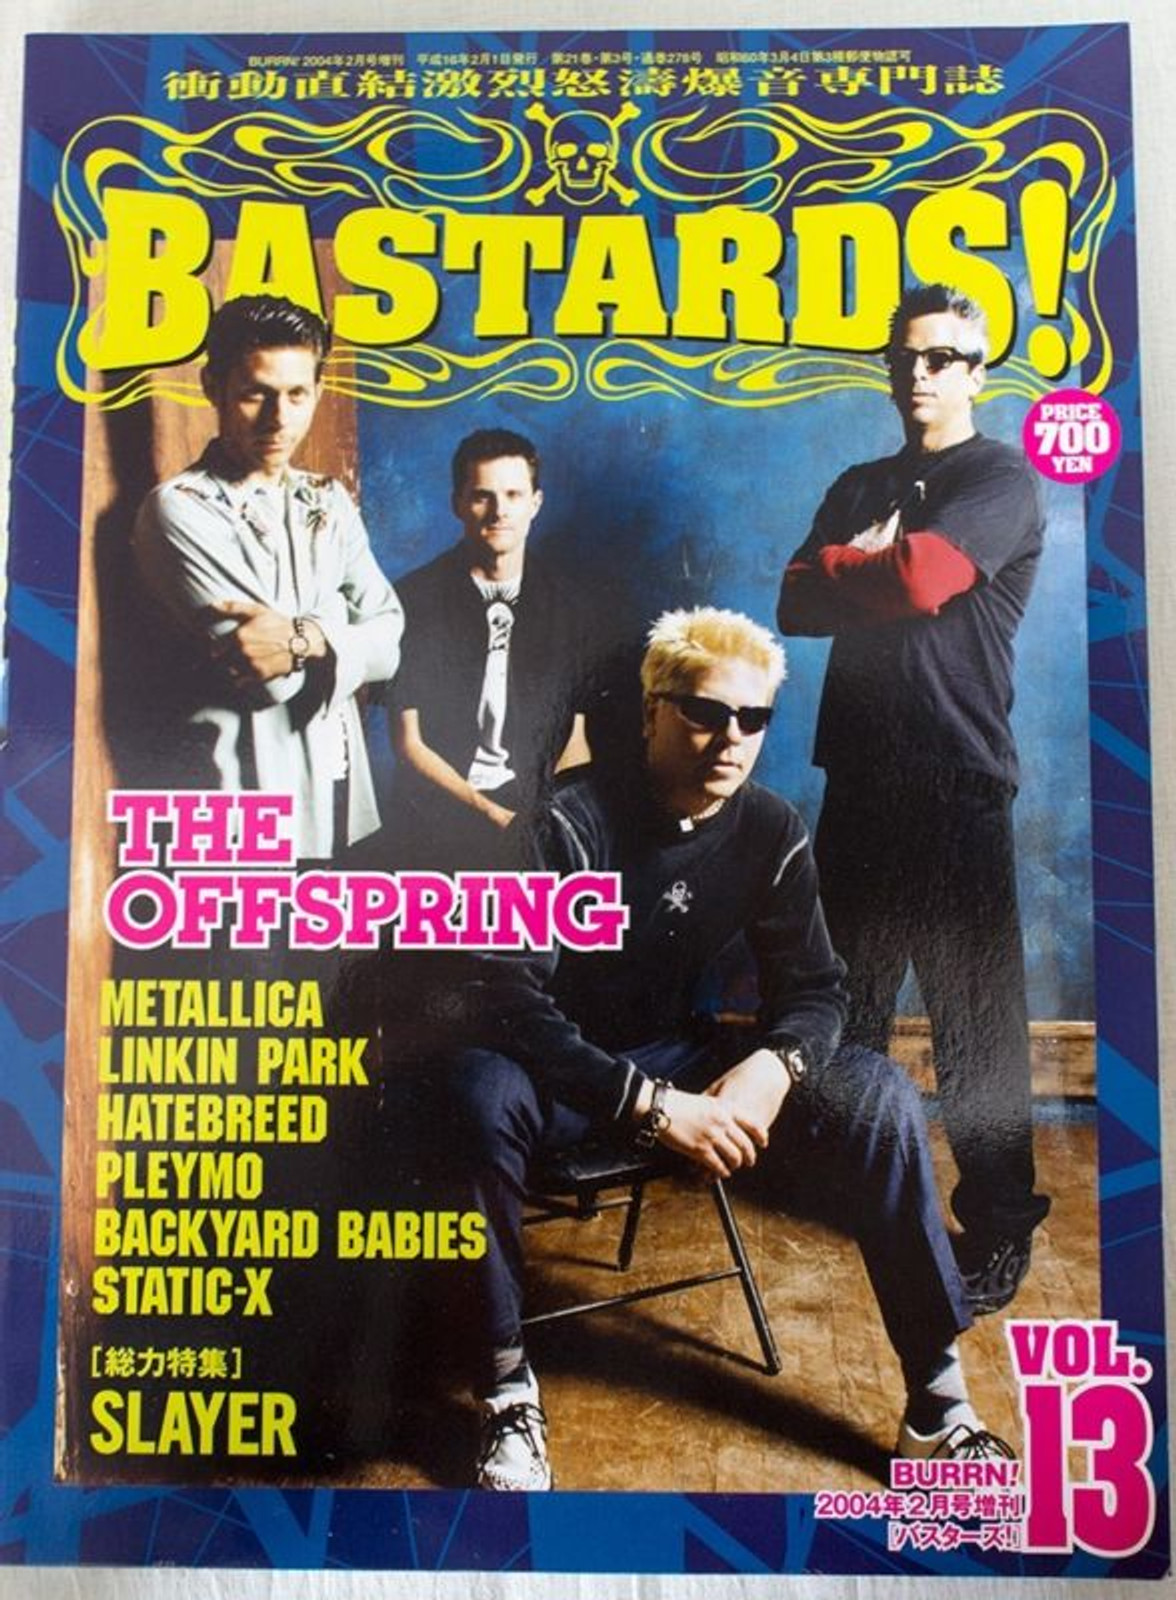 2004 Vol.13 BASTARDS! BURRN! Japan Magazine THE OFFSPRING/BACKYARD BABIES/PLEYMO